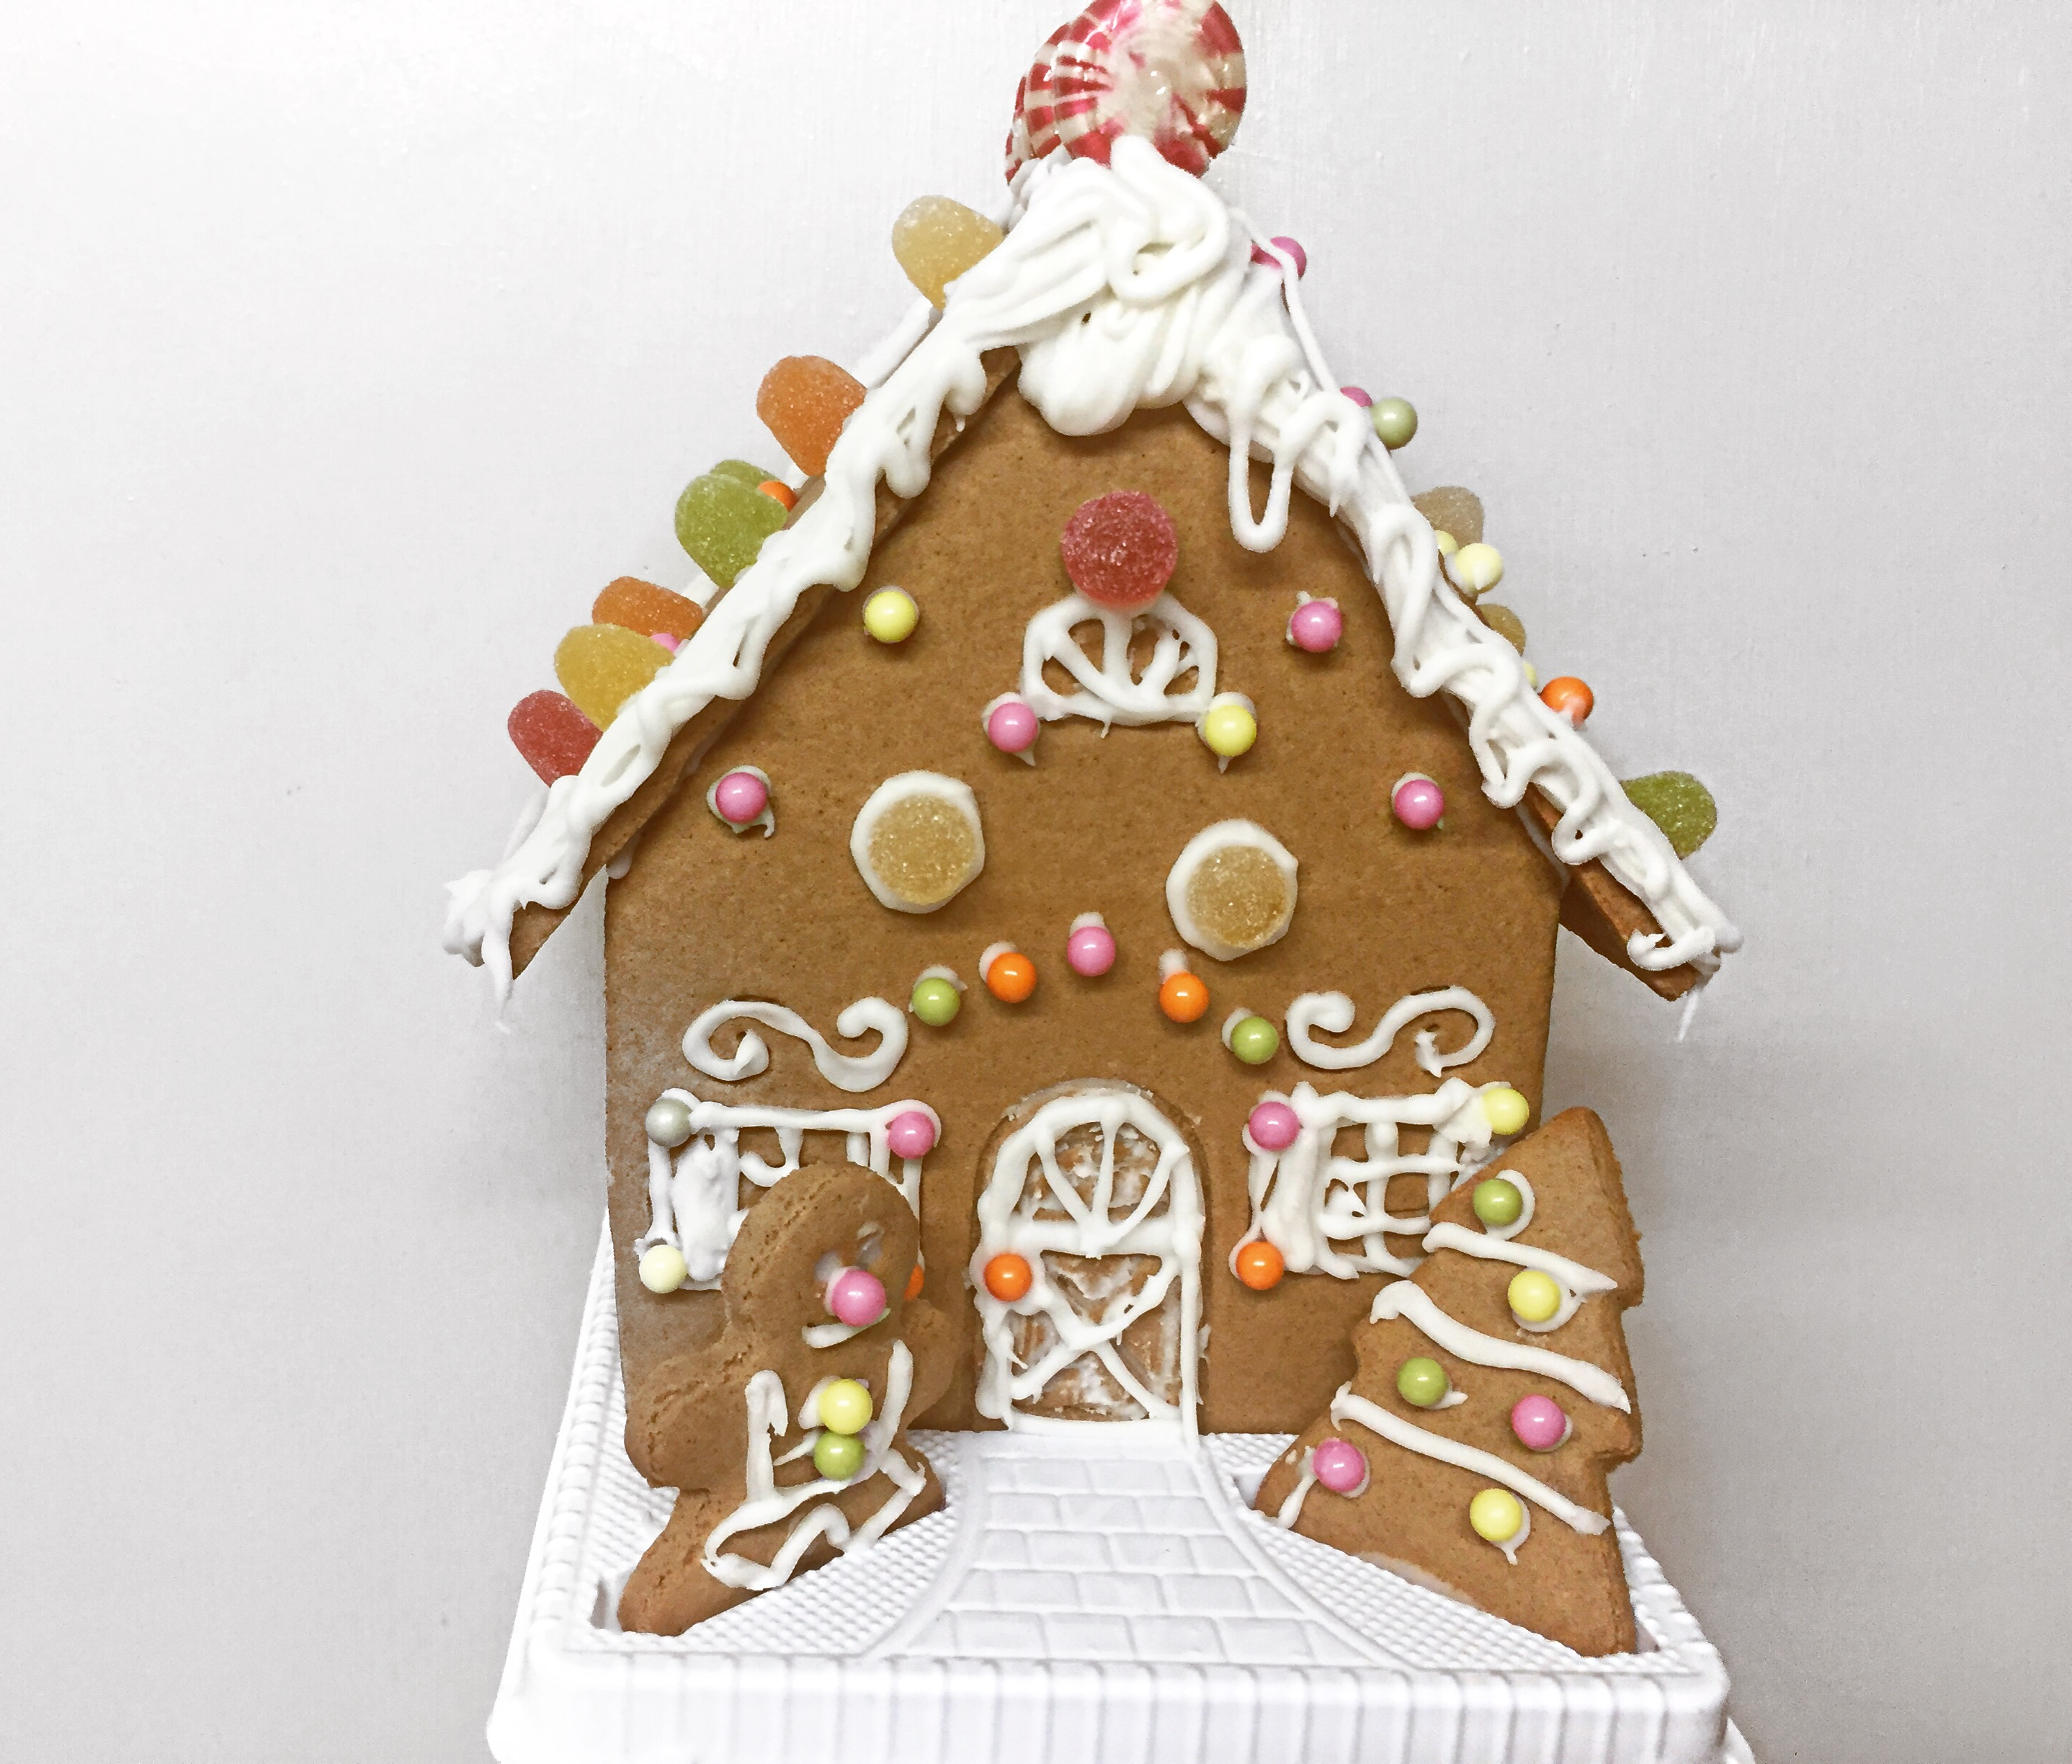 Tesco gingerbread house